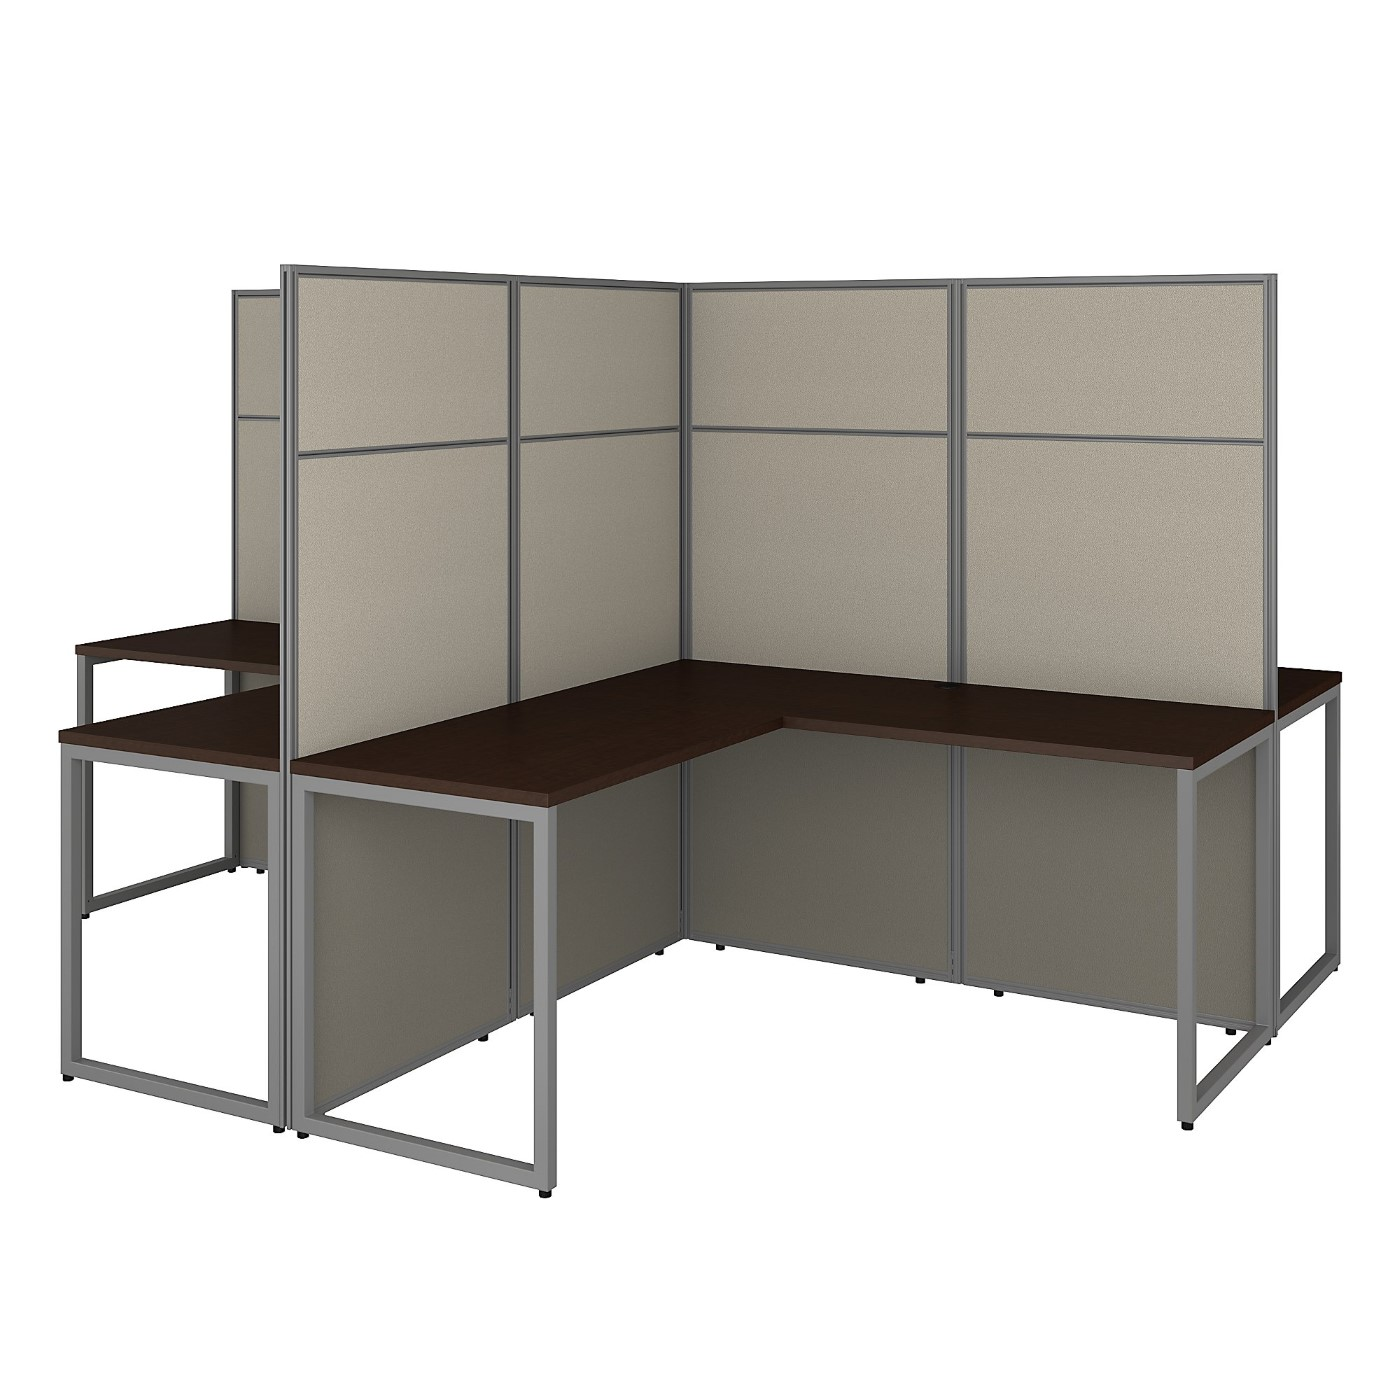 BUSH BUSINESS FURNITURE EASY OFFICE 60W 4 PERSON L SHAPED CUBICLE DESK WORKSTATION WITH 66H PANELS. FREE SHIPPING 30H x 72L x 72W  VIDEO BELOW.  SALE DEDUCT 10% MORE ENTER '10percent' IN COUPON CODE BOX WHILE CHECKING OUT. ENDS 5-31-20.